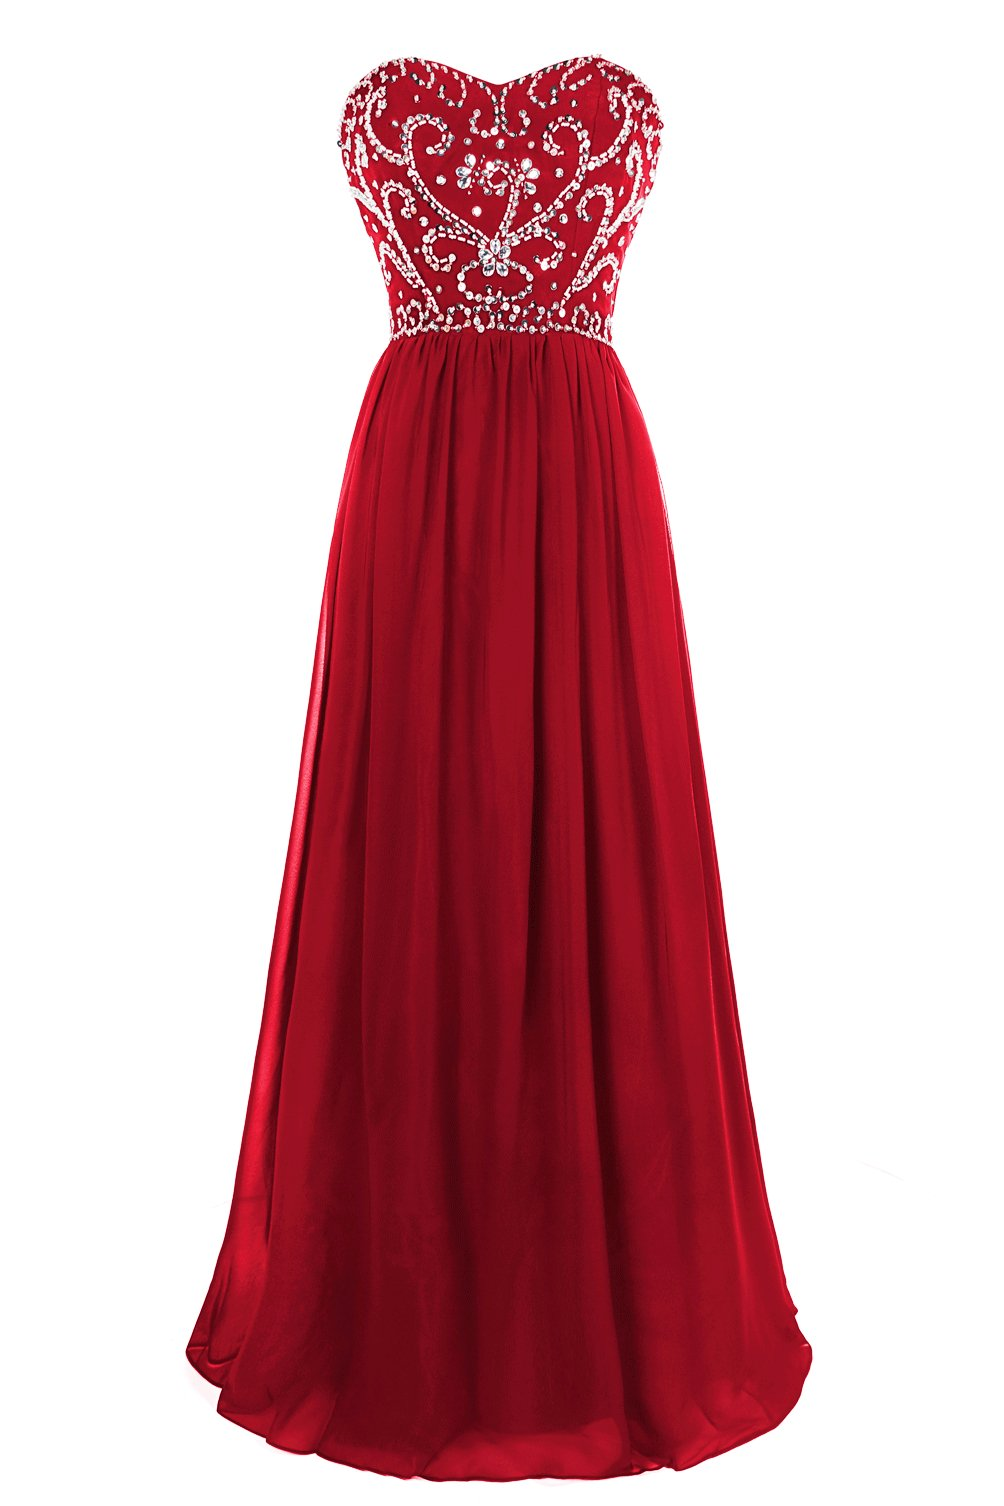 MsJune Prom Dresses Sweetheart Beaded A Line Lace Up Back Floor Length Evening Dress Burgundy 18 Plus